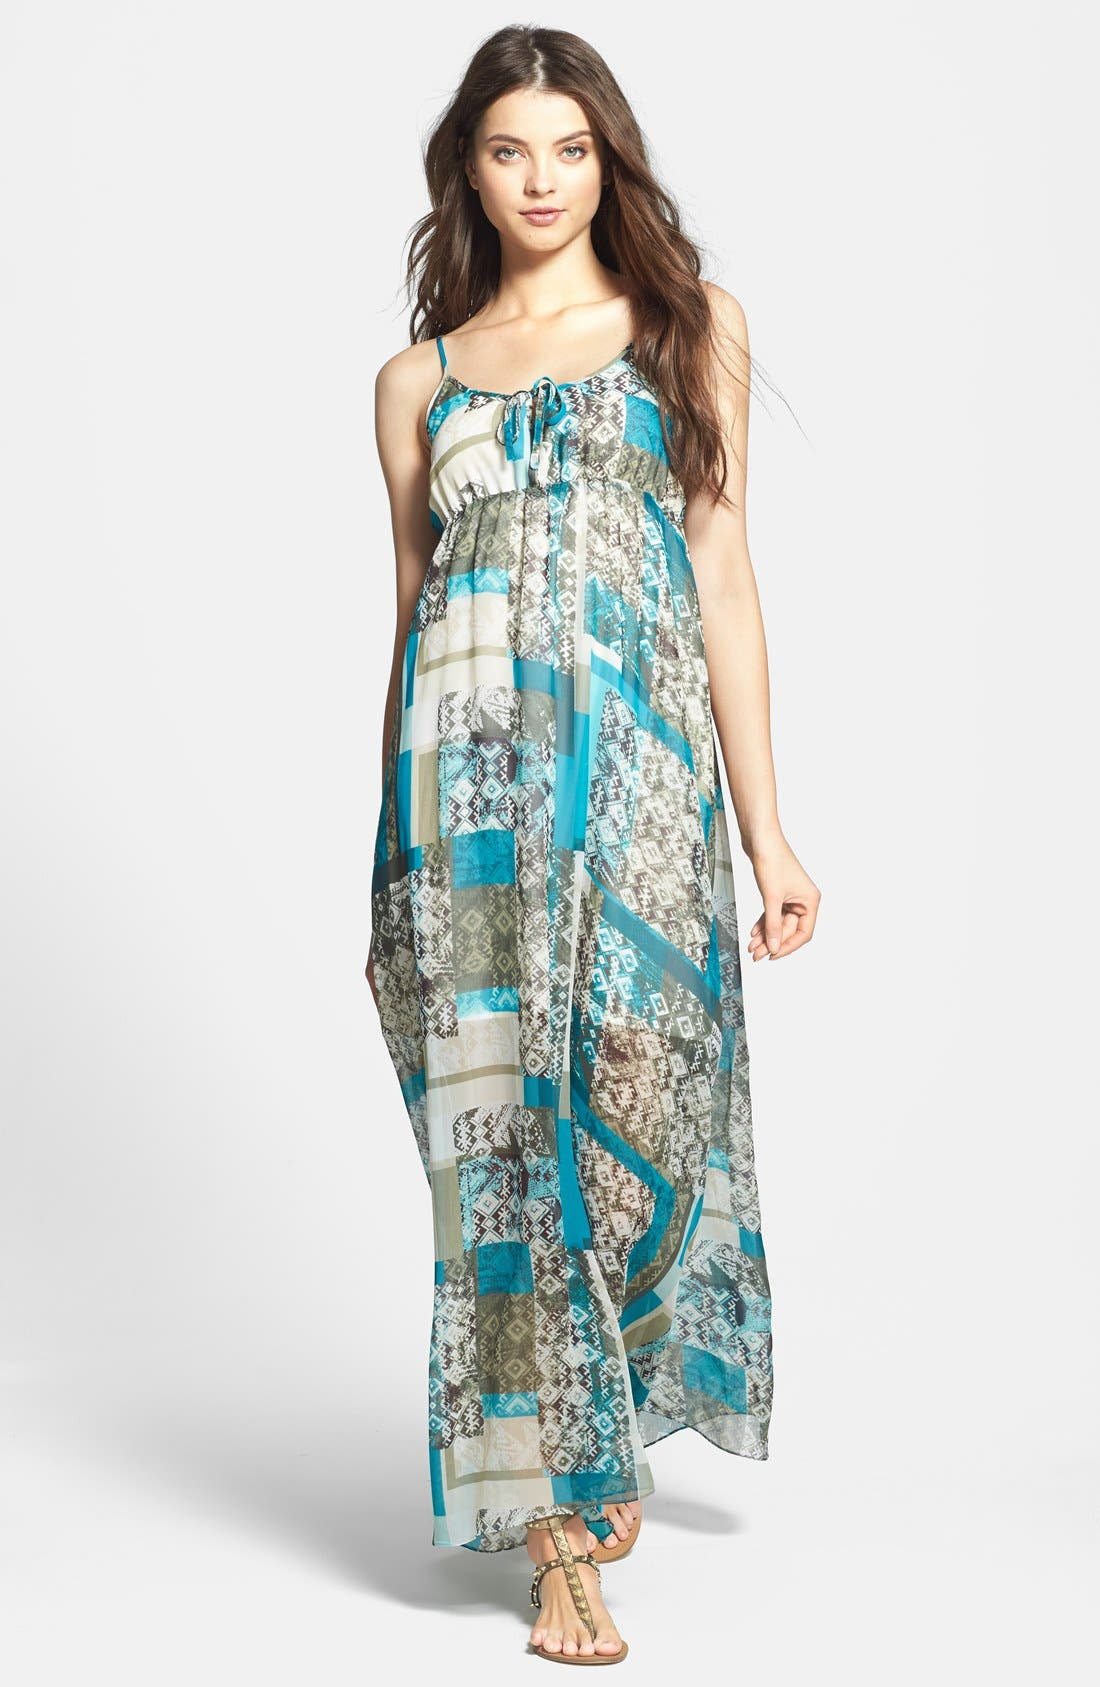 Alternate Image 1 Selected - Two by Vince Camuto 'Bohemian Patchwork' Maxi Dress